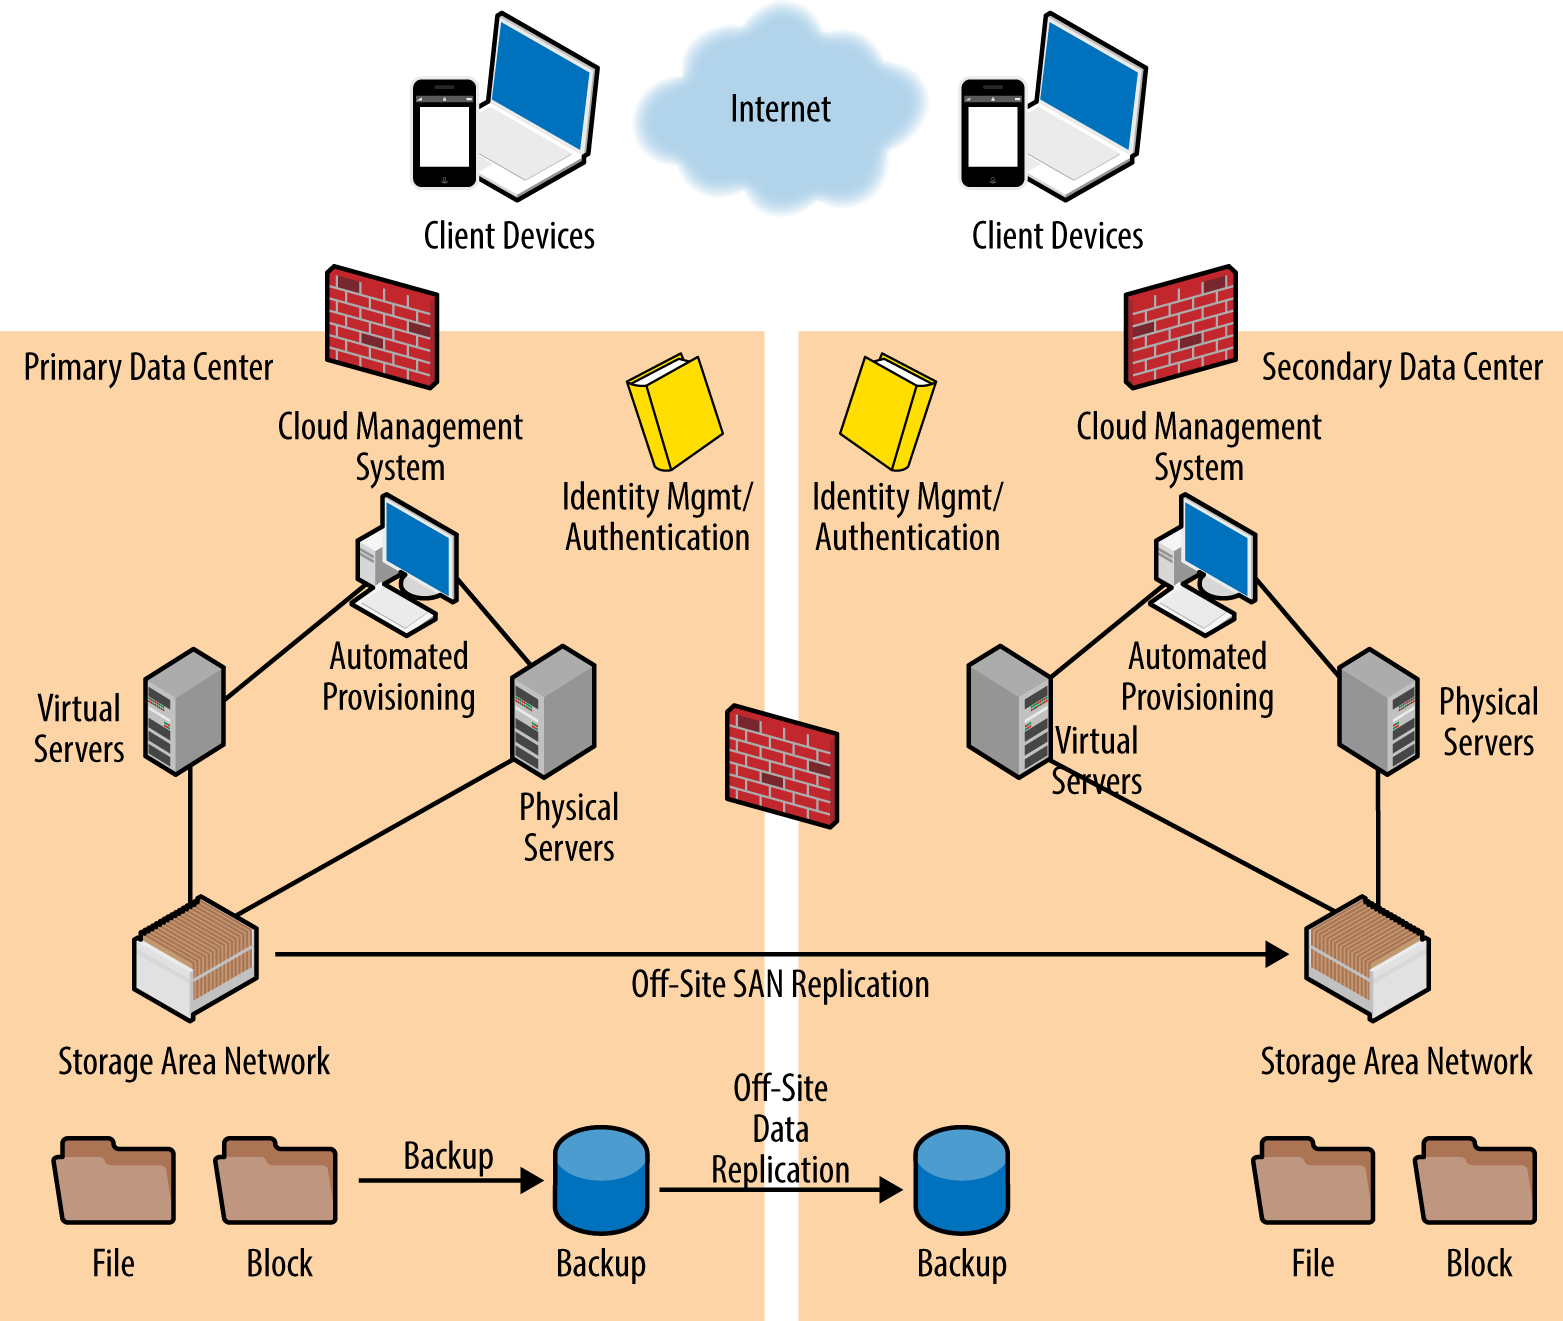 1 Planning And Architecture The Enterprise Cloud Book Also Learning Memory Diagram On Network With Intranet Typical Iaas